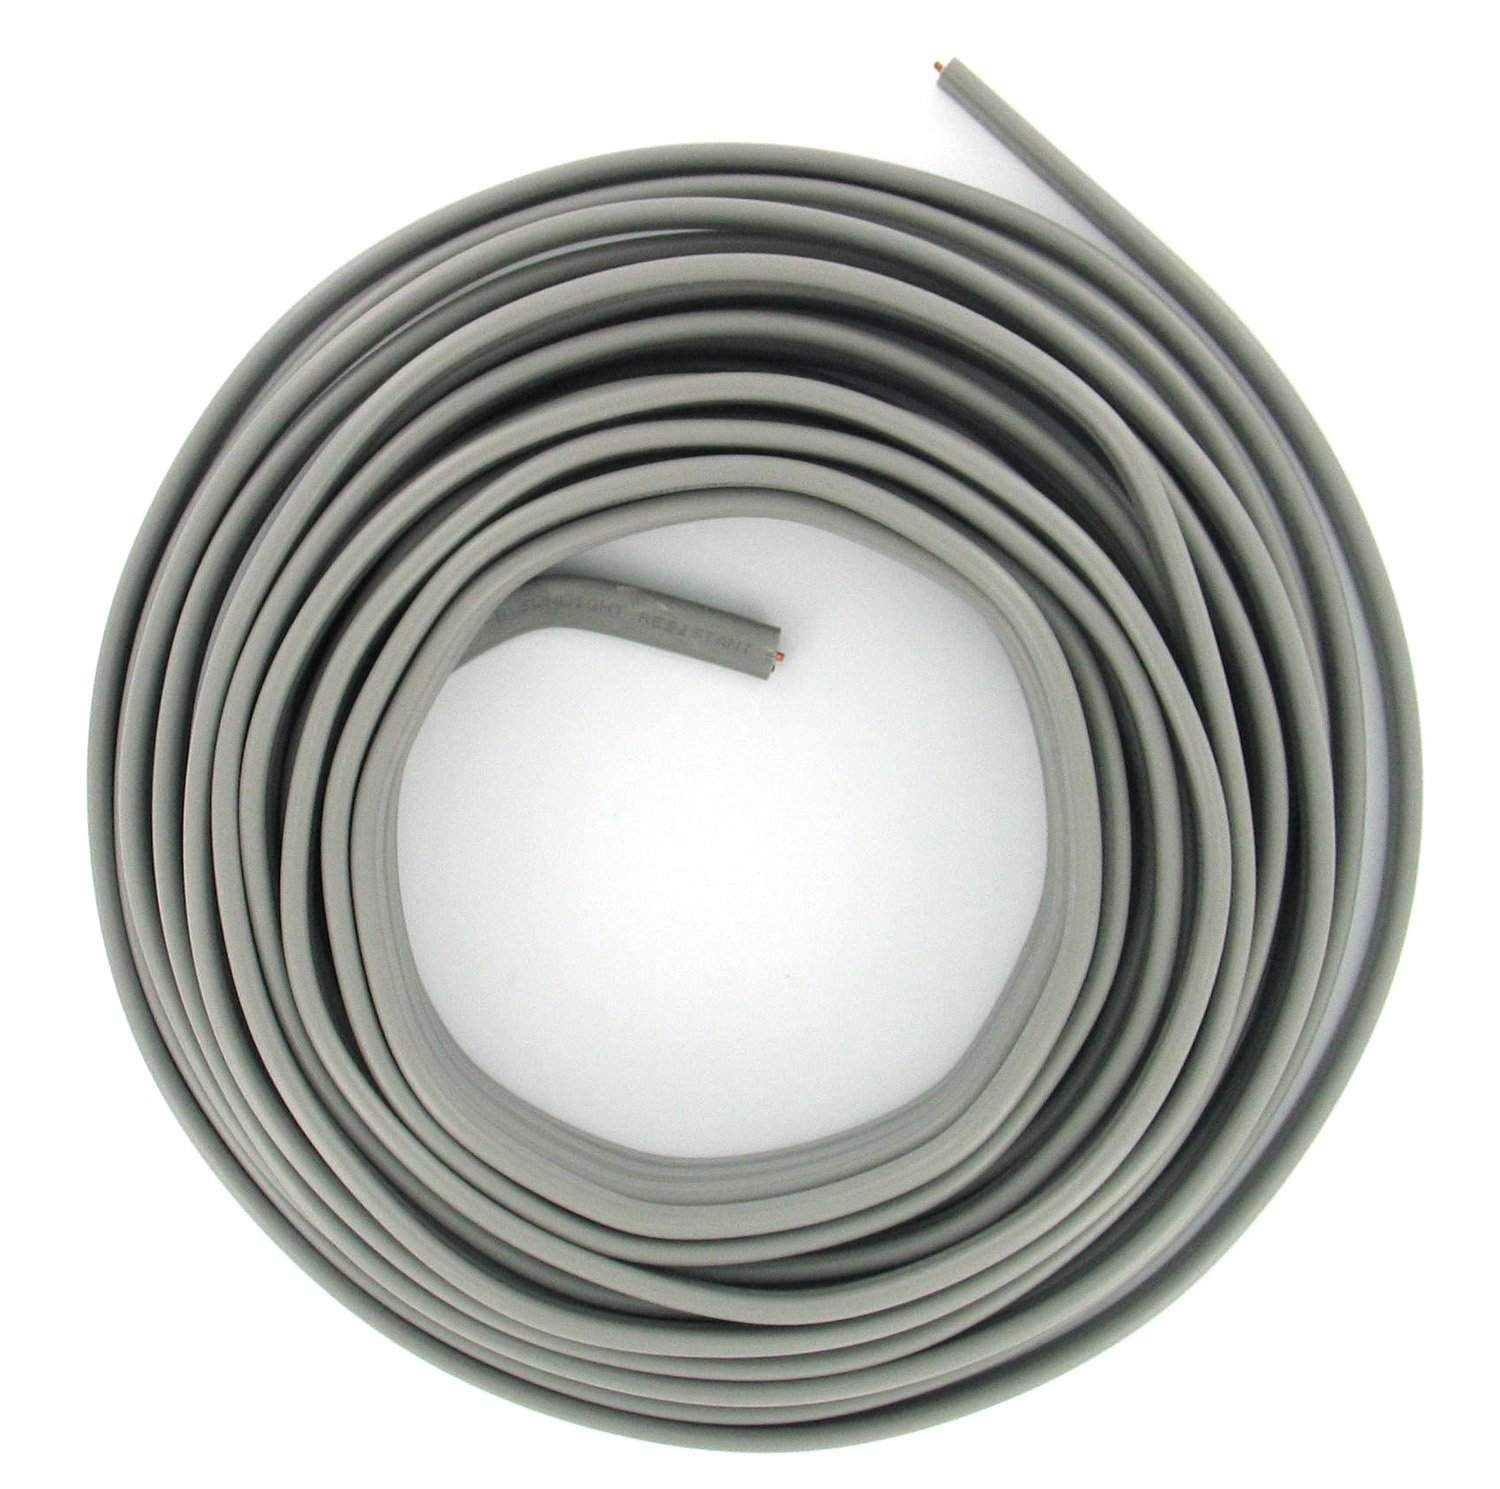 hight resolution of uf cable